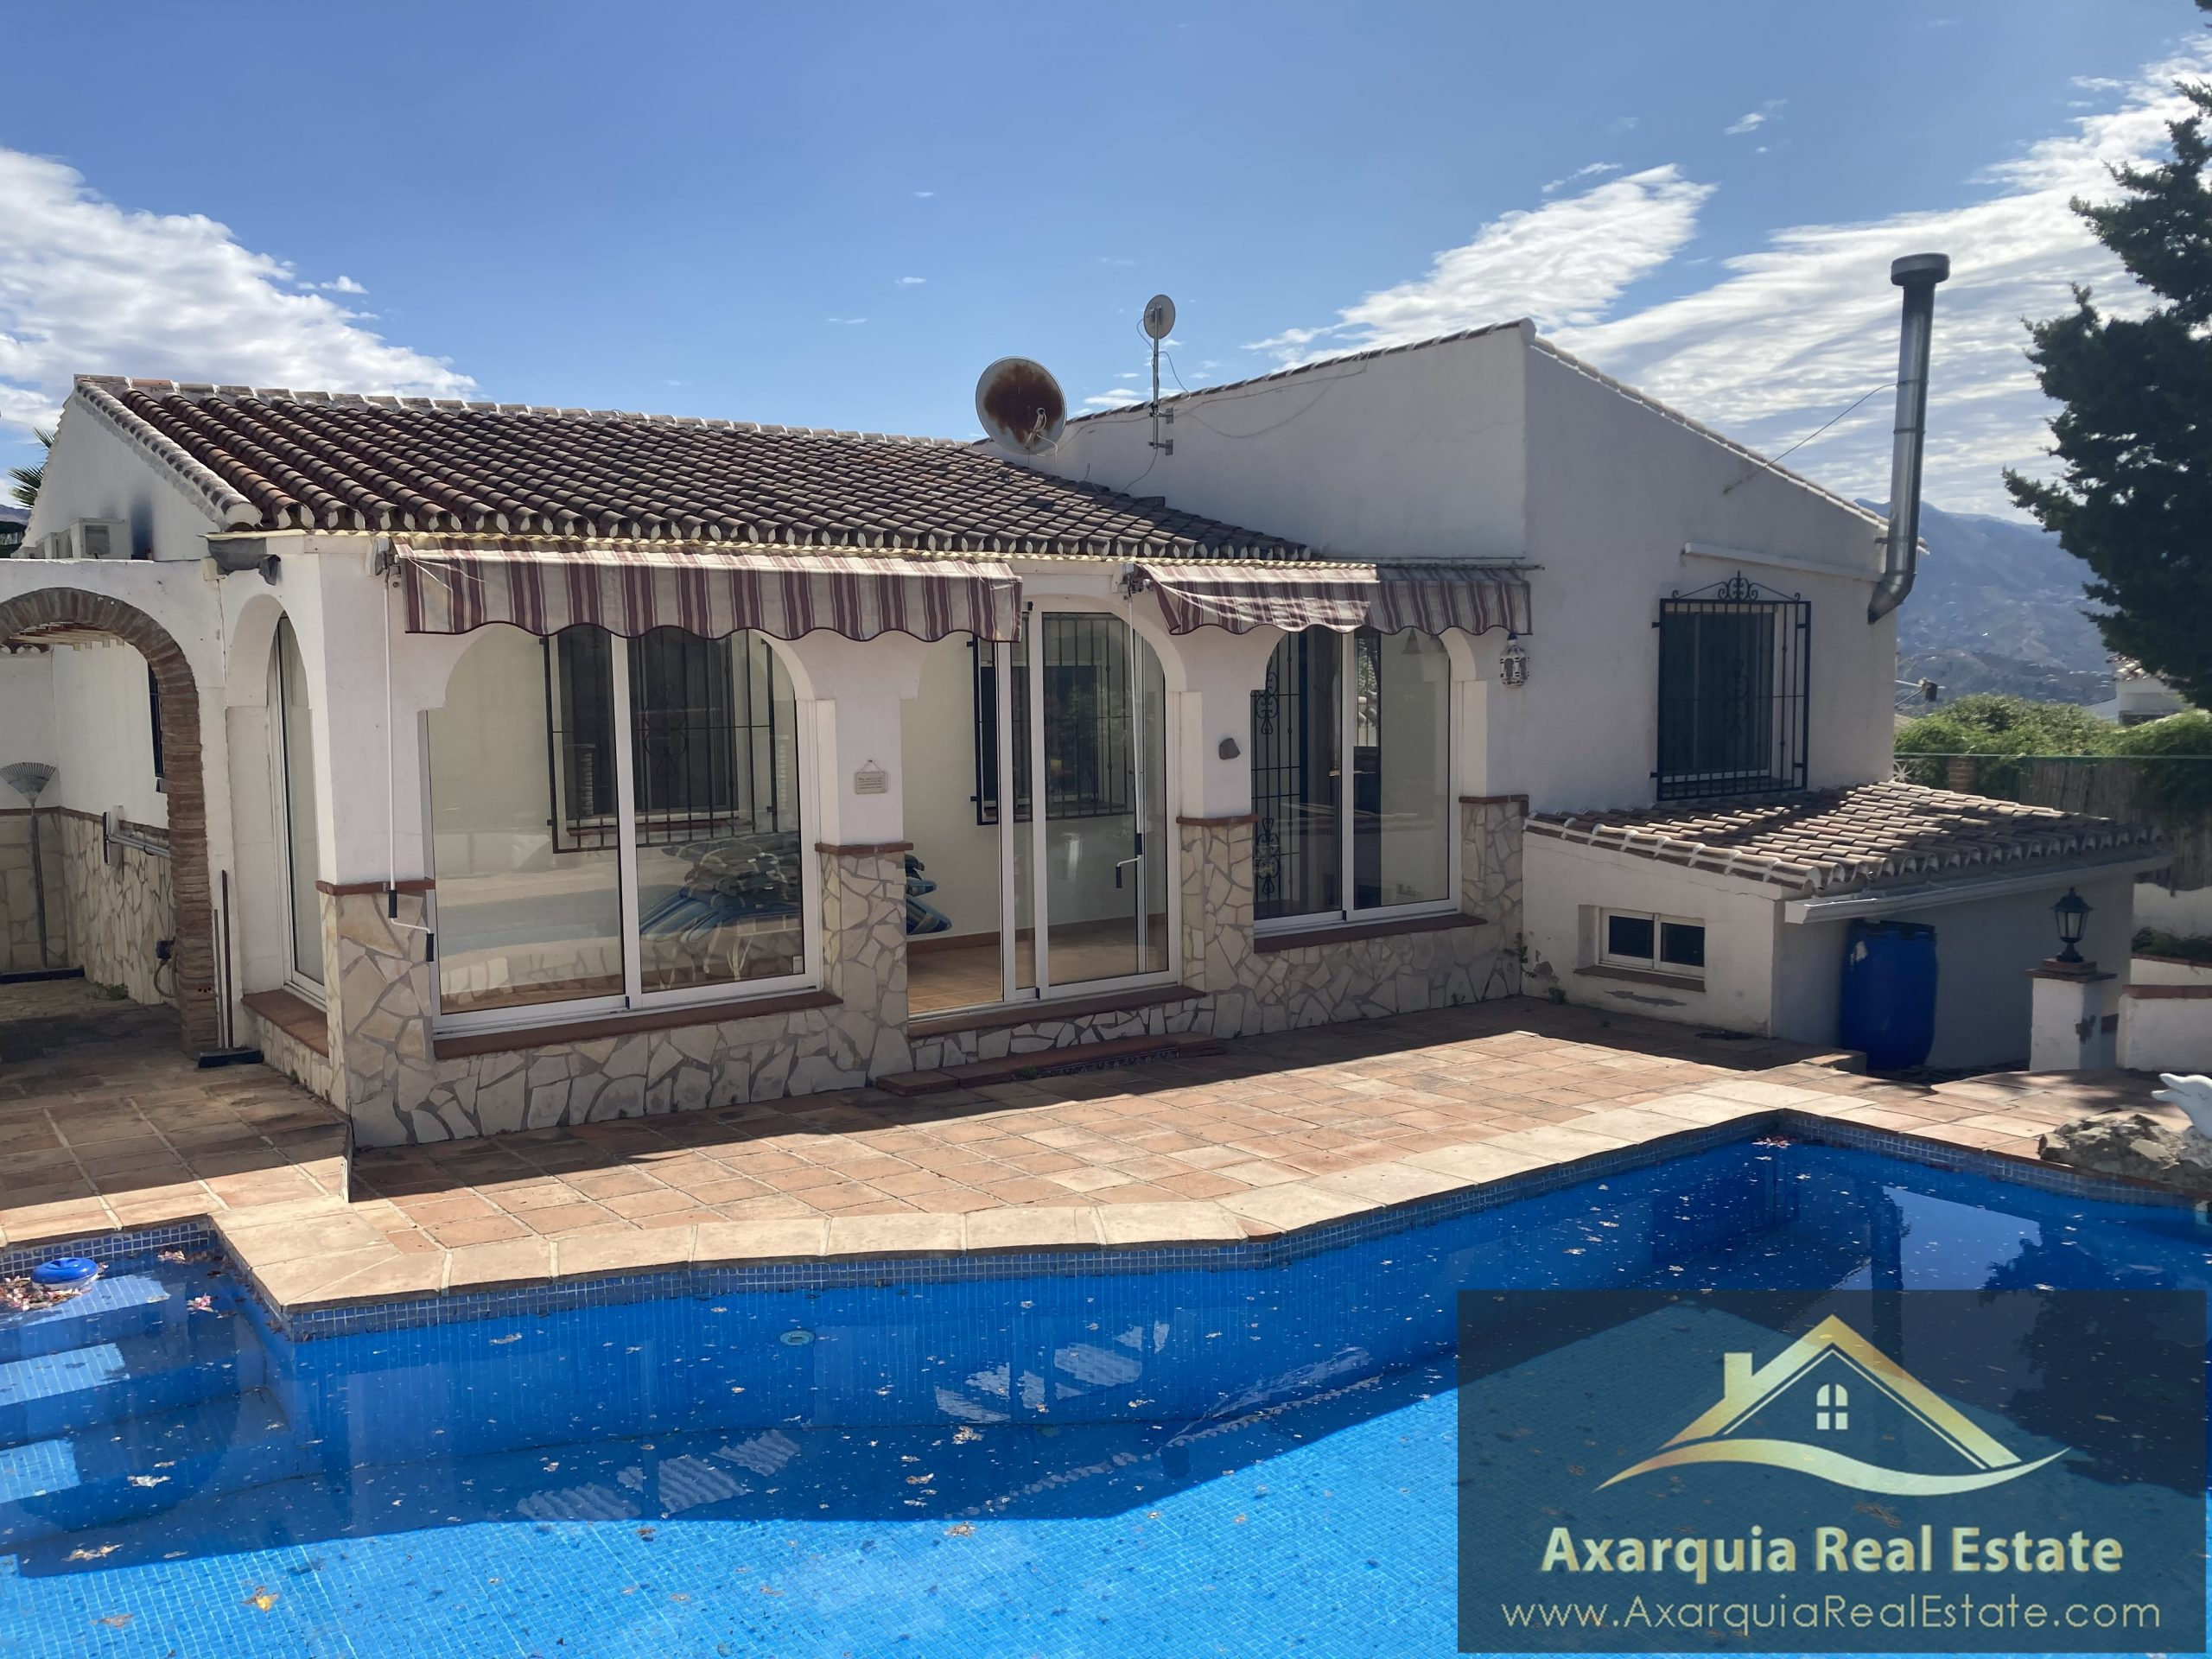 3 bedroom villa in Los Romanes with swimming pool and car port.